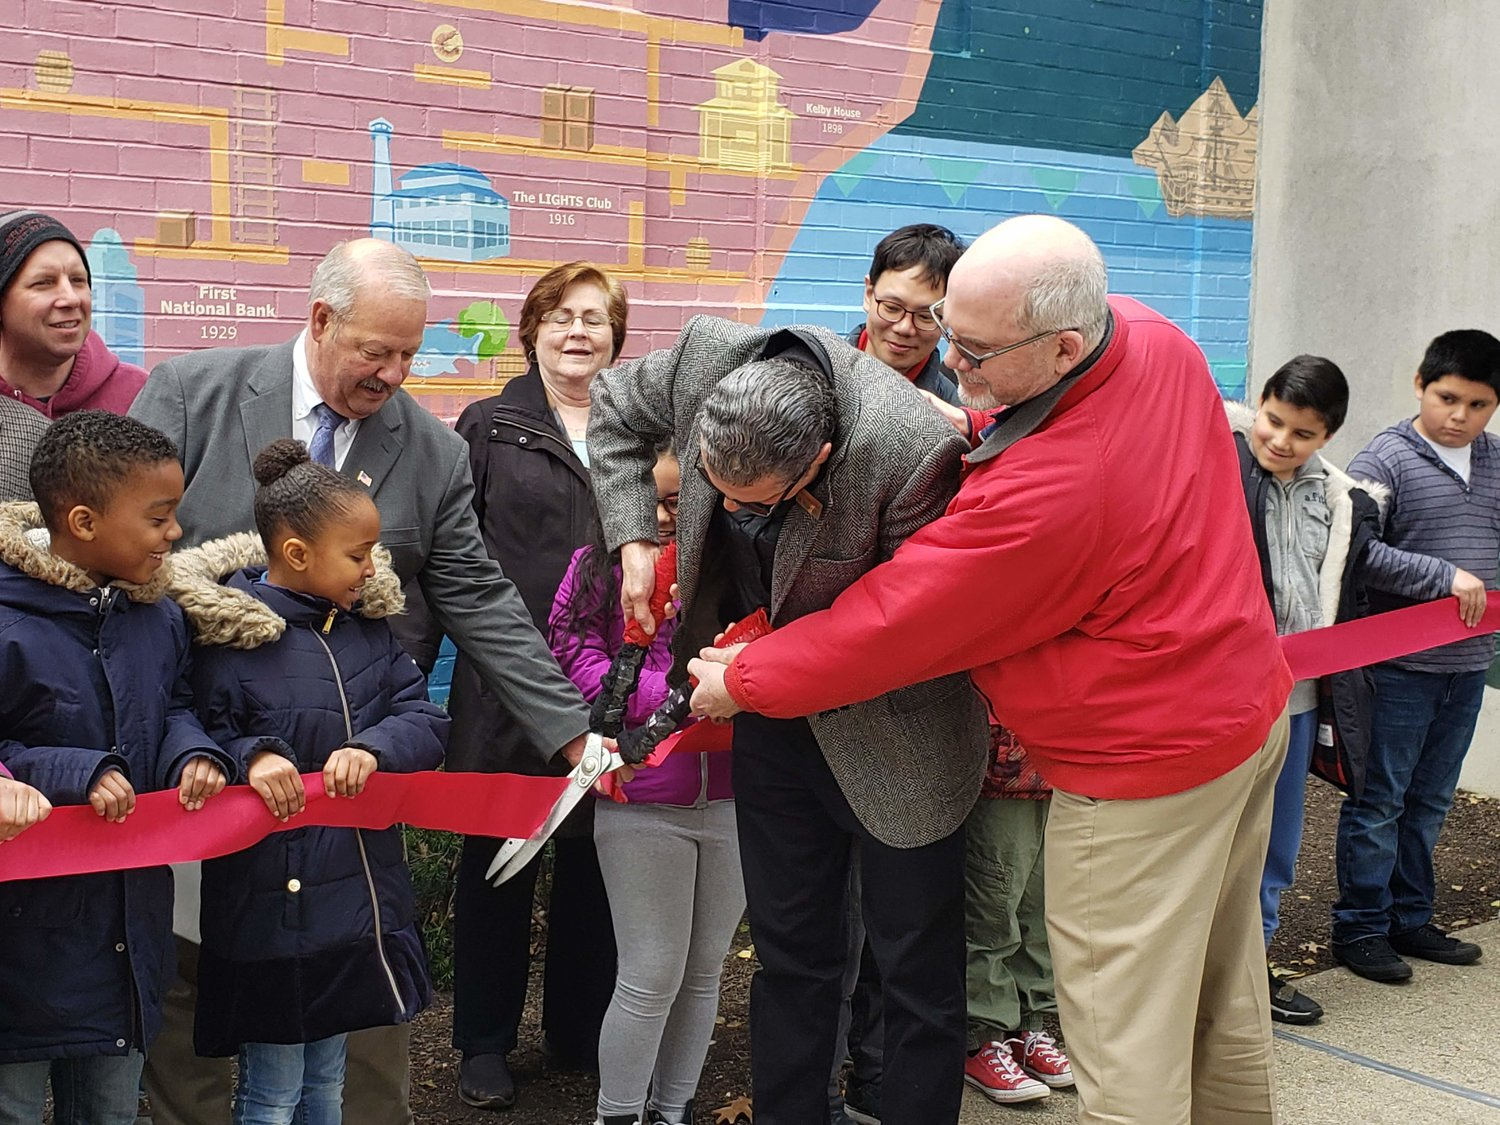 The Long Island Arts Council at Freeport and the Freeport Memorial Library held a ribbon-cutting ceremony to celebrate the unveiling of the new mural last Saturday.